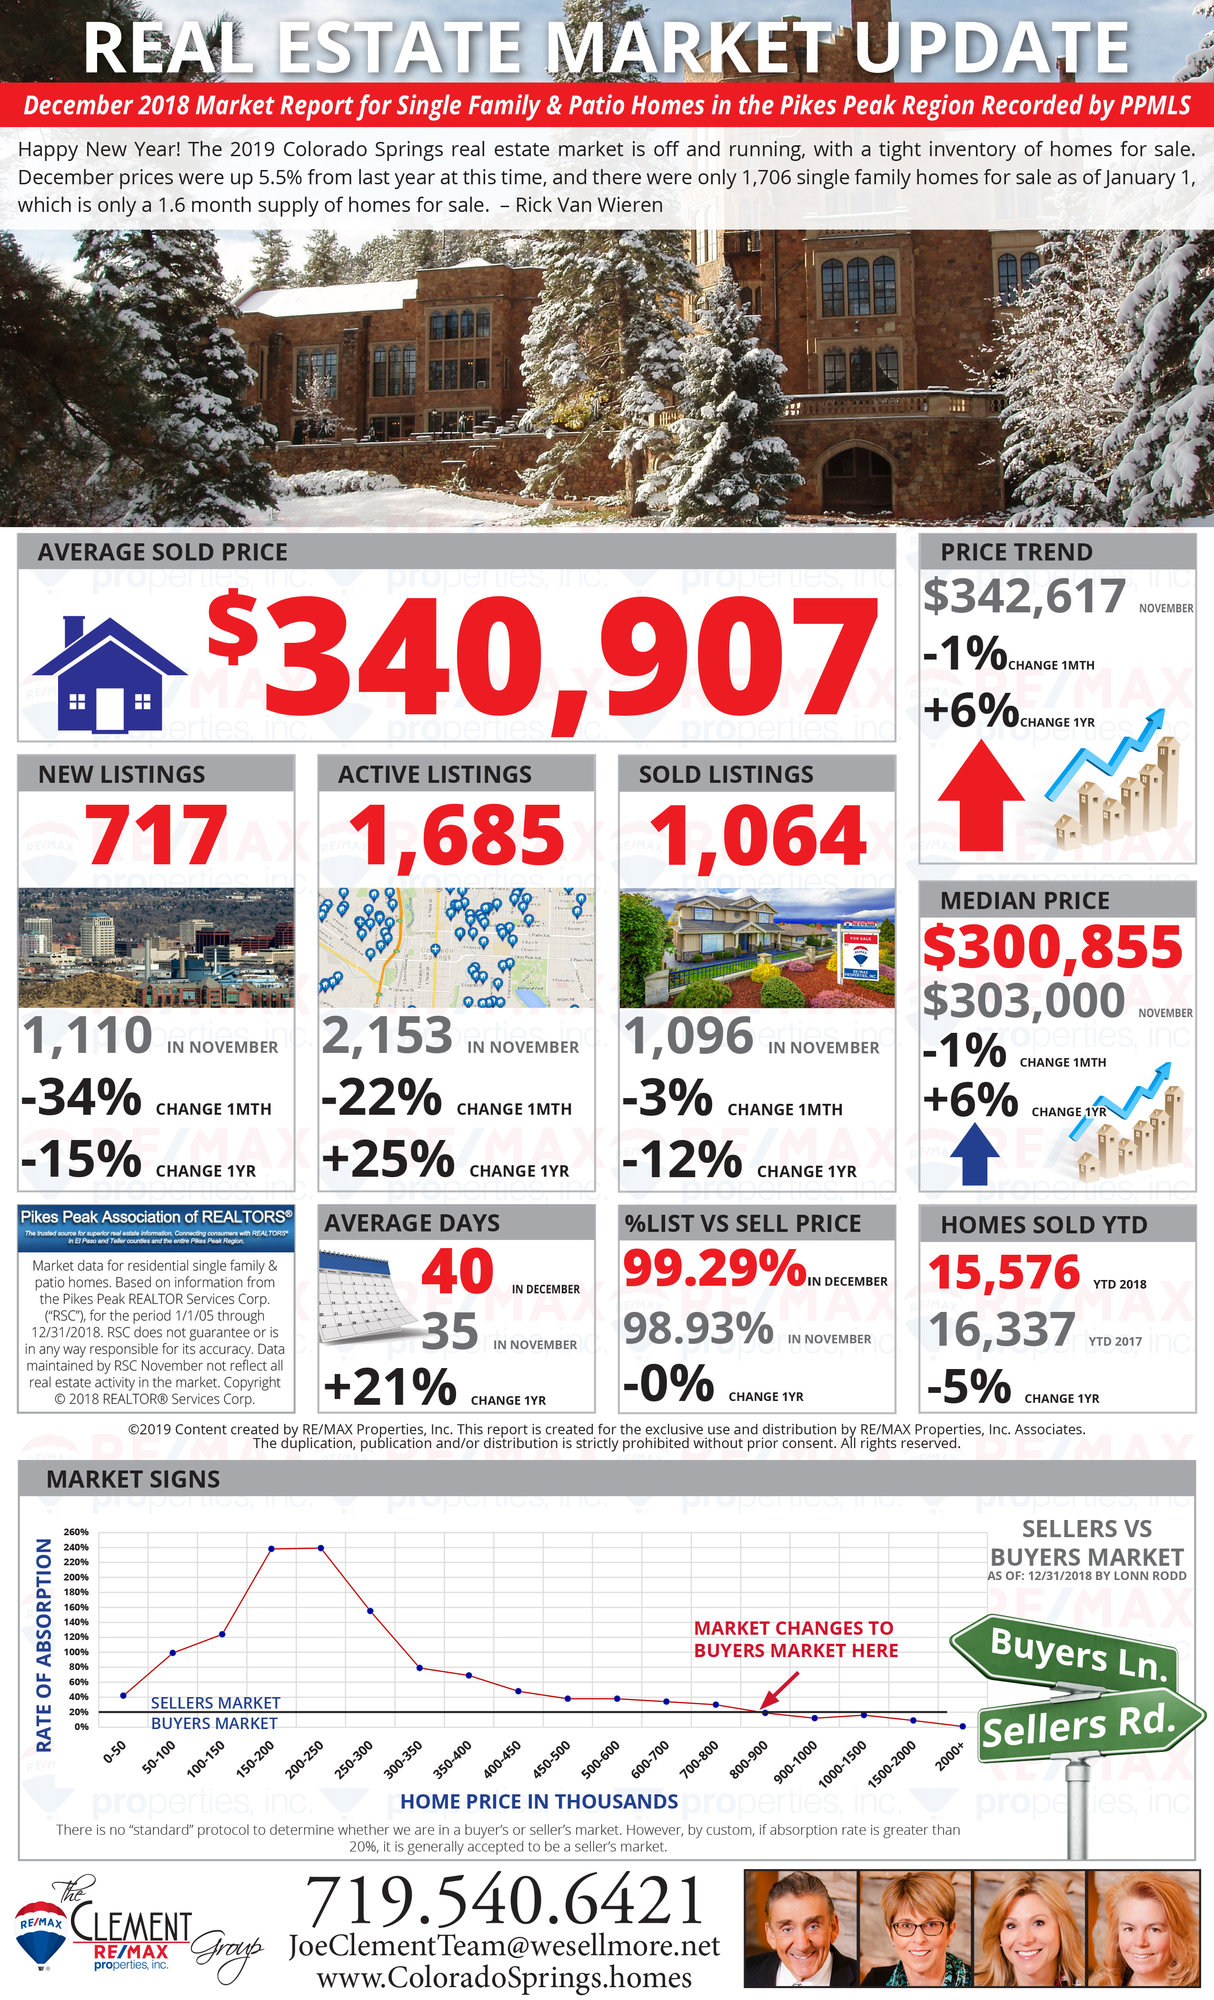 December 2018 Market Update - Colorado Springs Real Estate